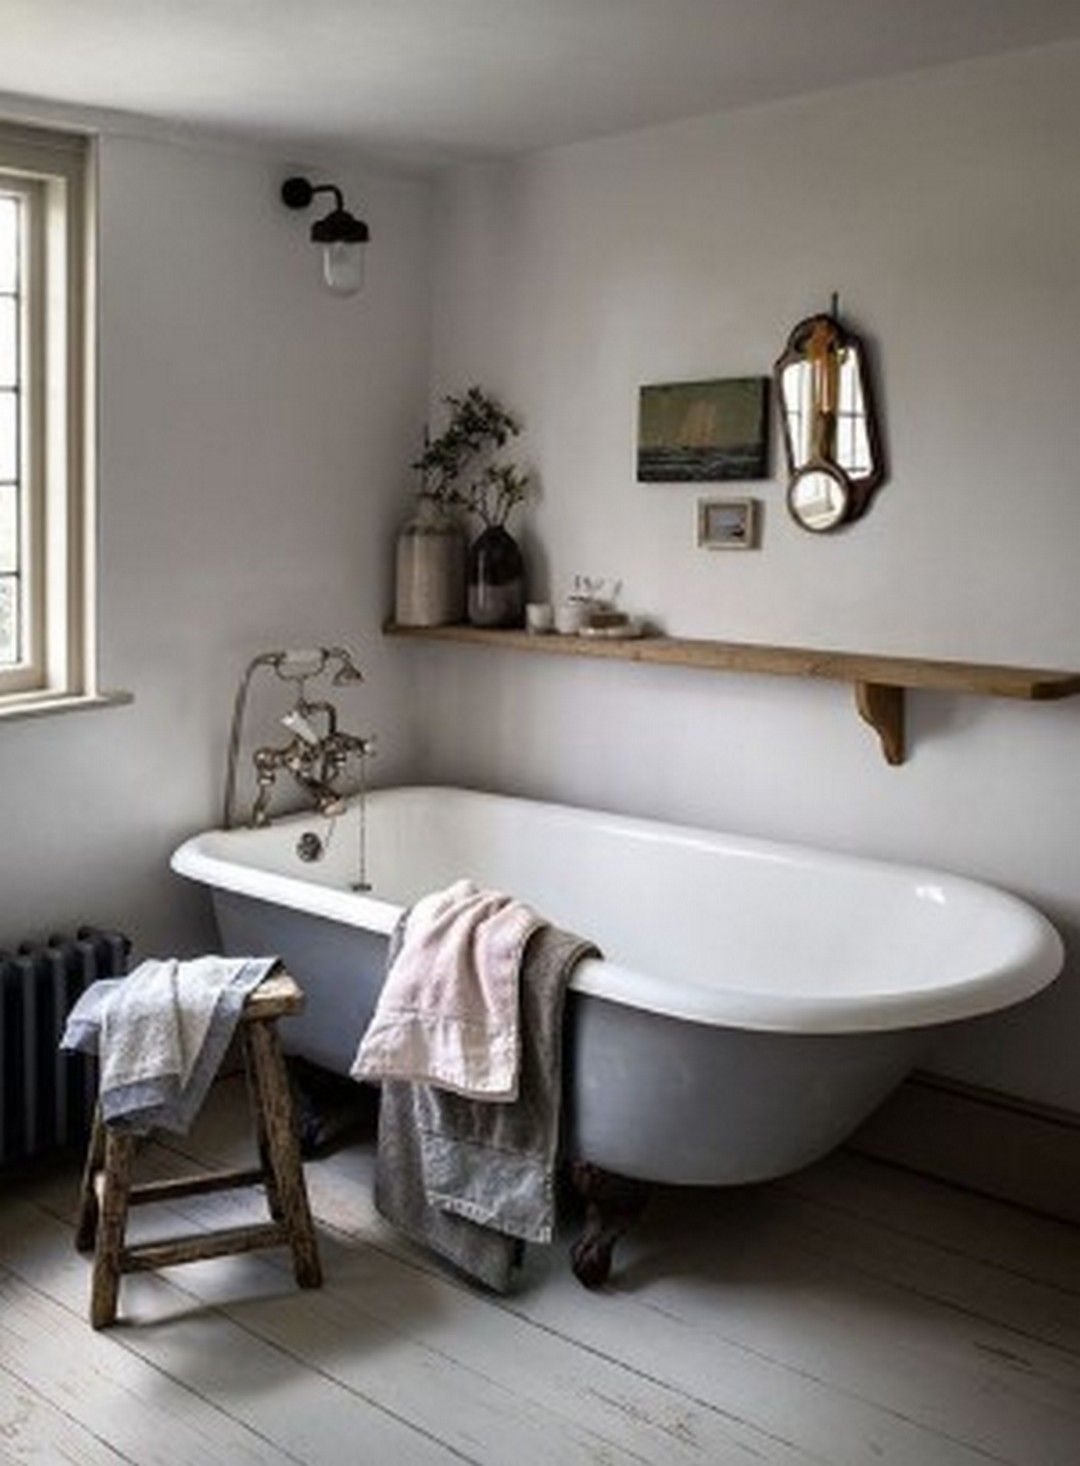 5 Cottage Style Bathroom Ideas For A Relaxing Feel (With ...